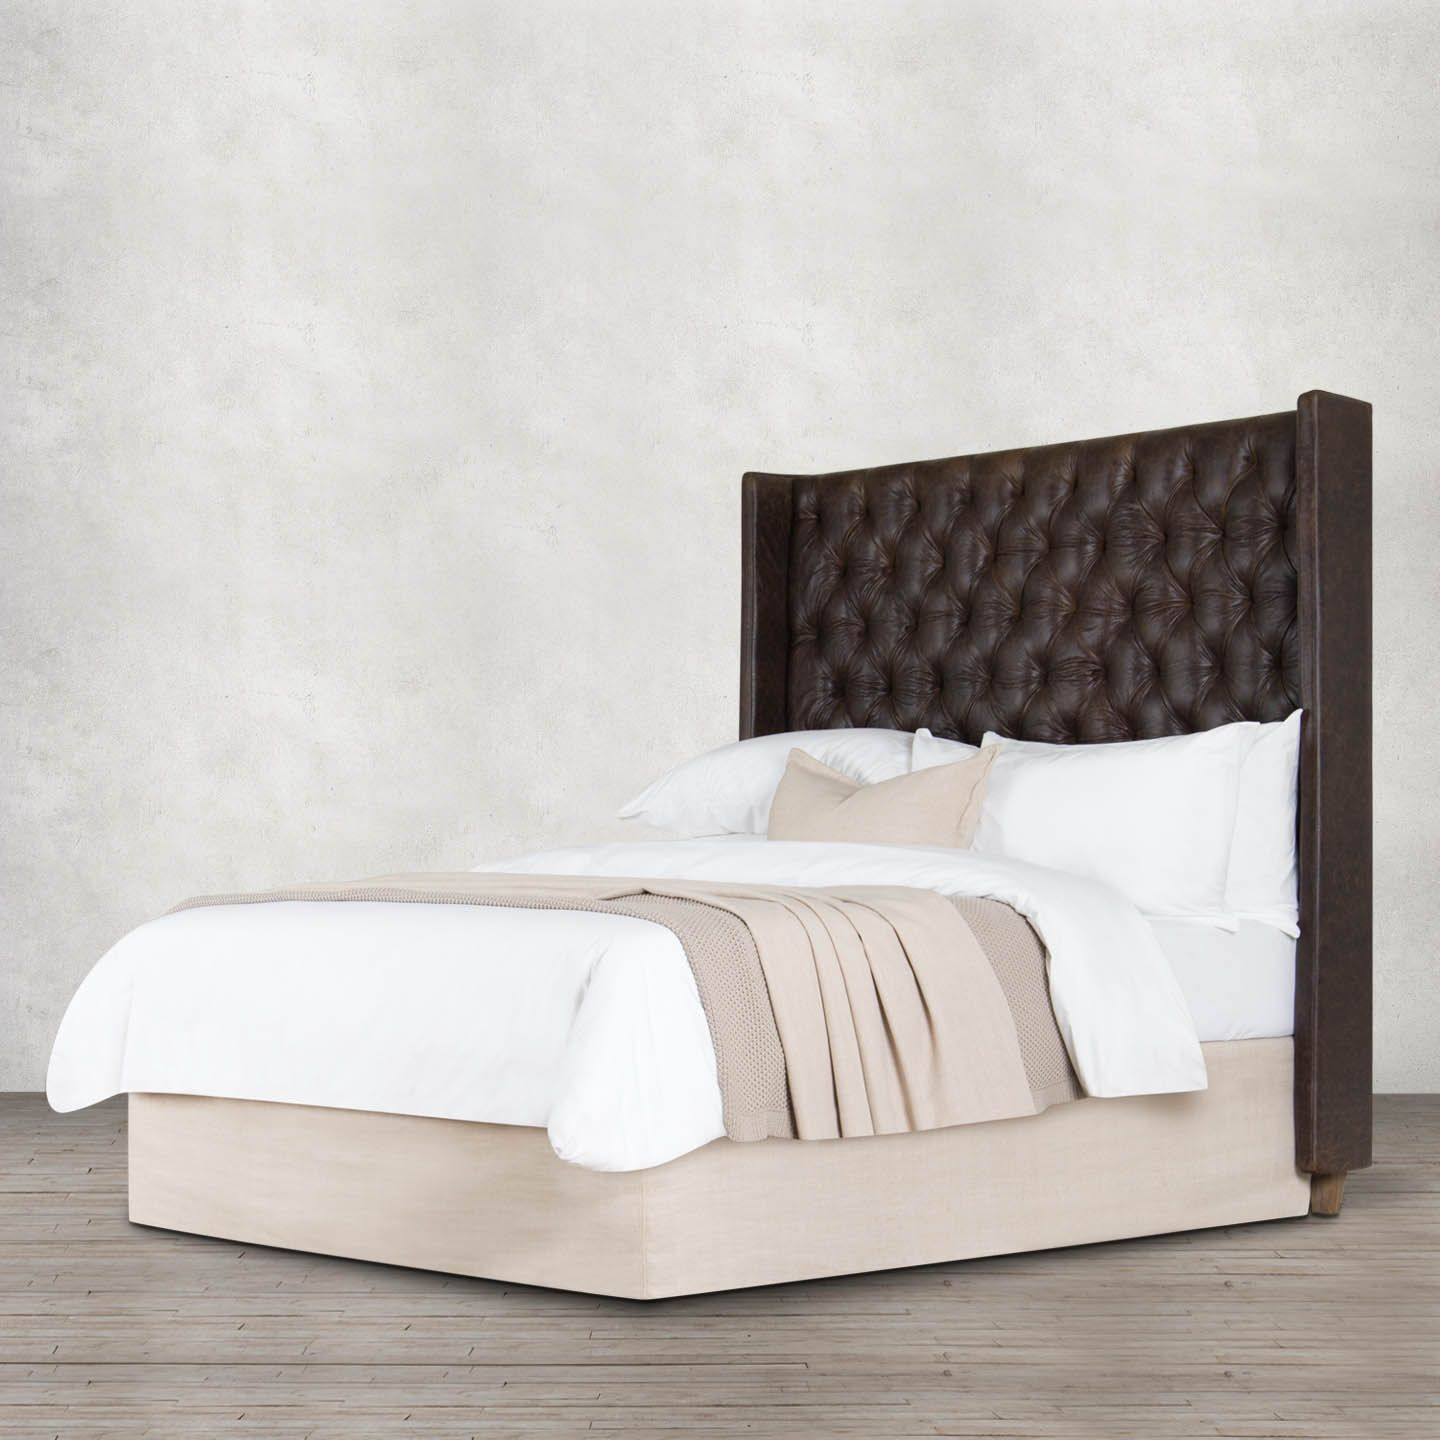 BOXED TUFTED HEADBOARD R14995 BOXED TUFTED HEADBOARD Upholstered For Comfort  This Headboard Is The Prefect Piece